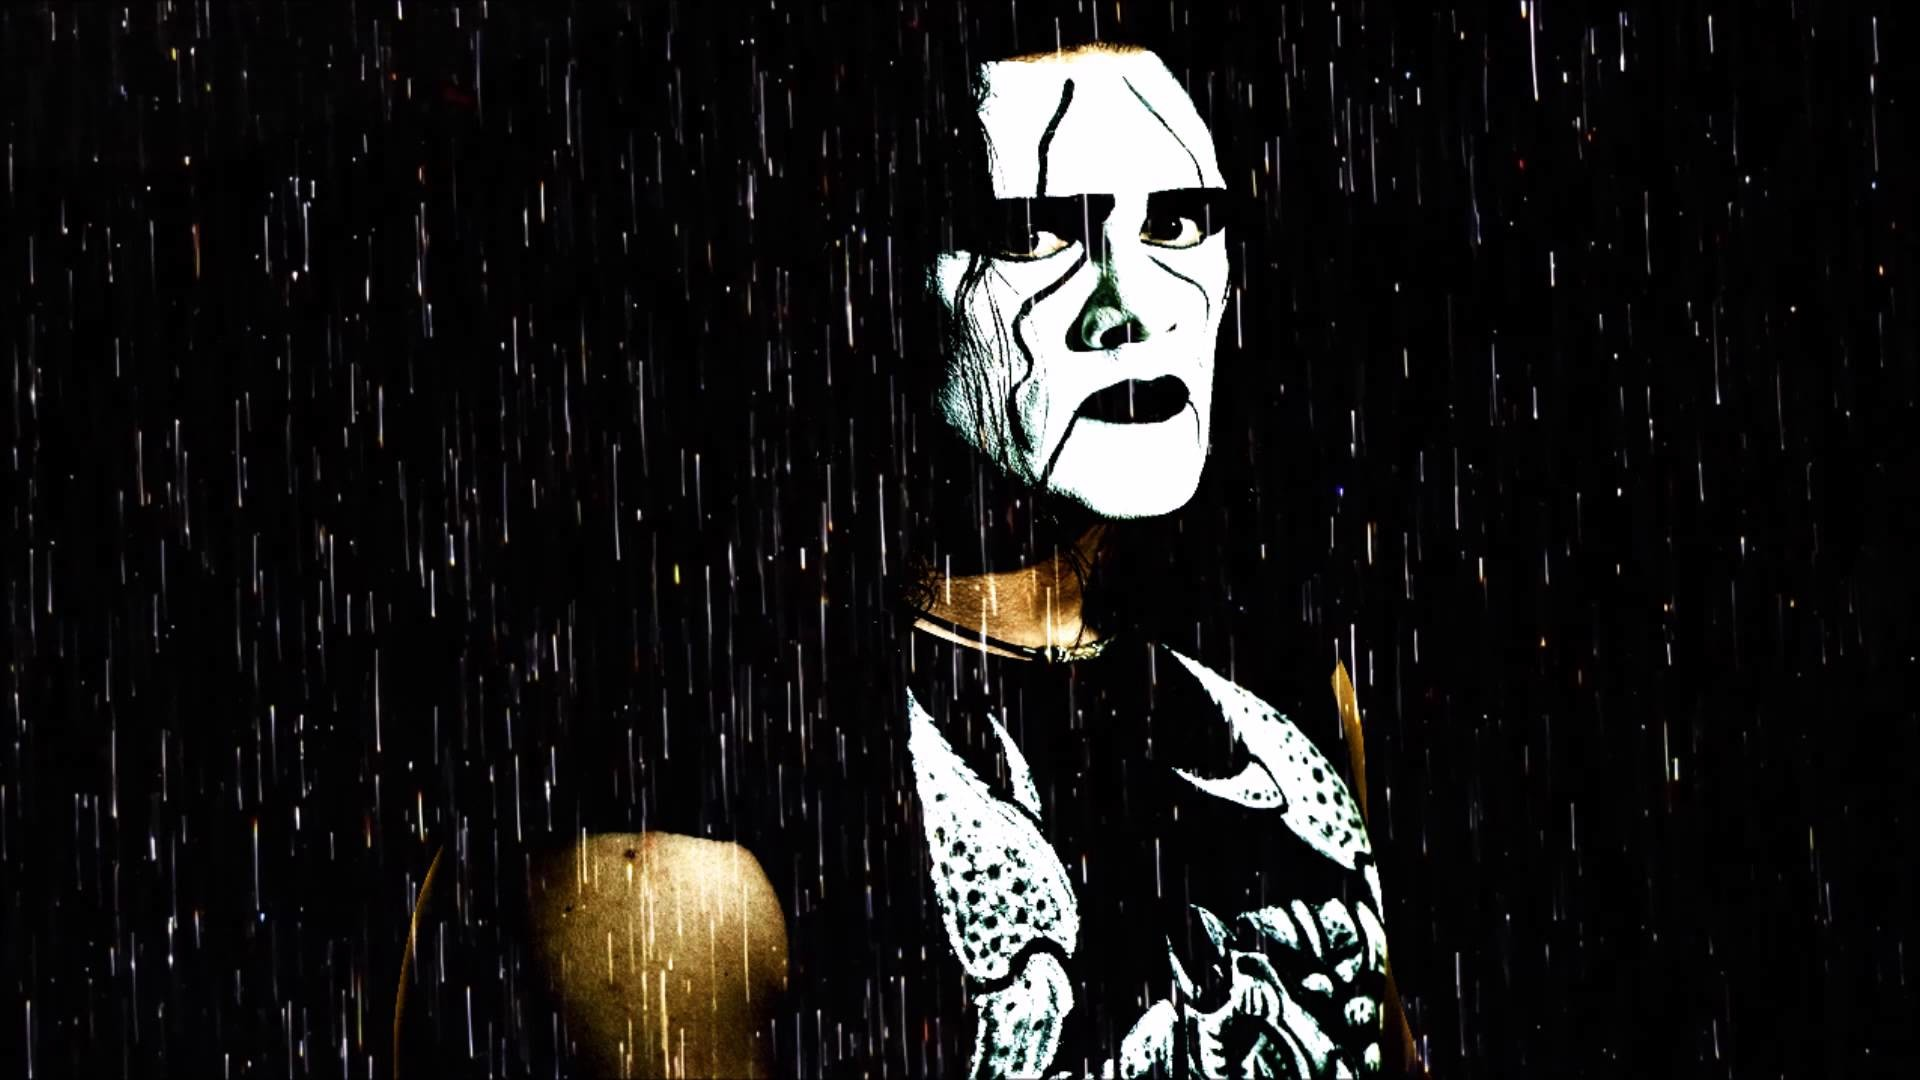 Sting WCW theme song